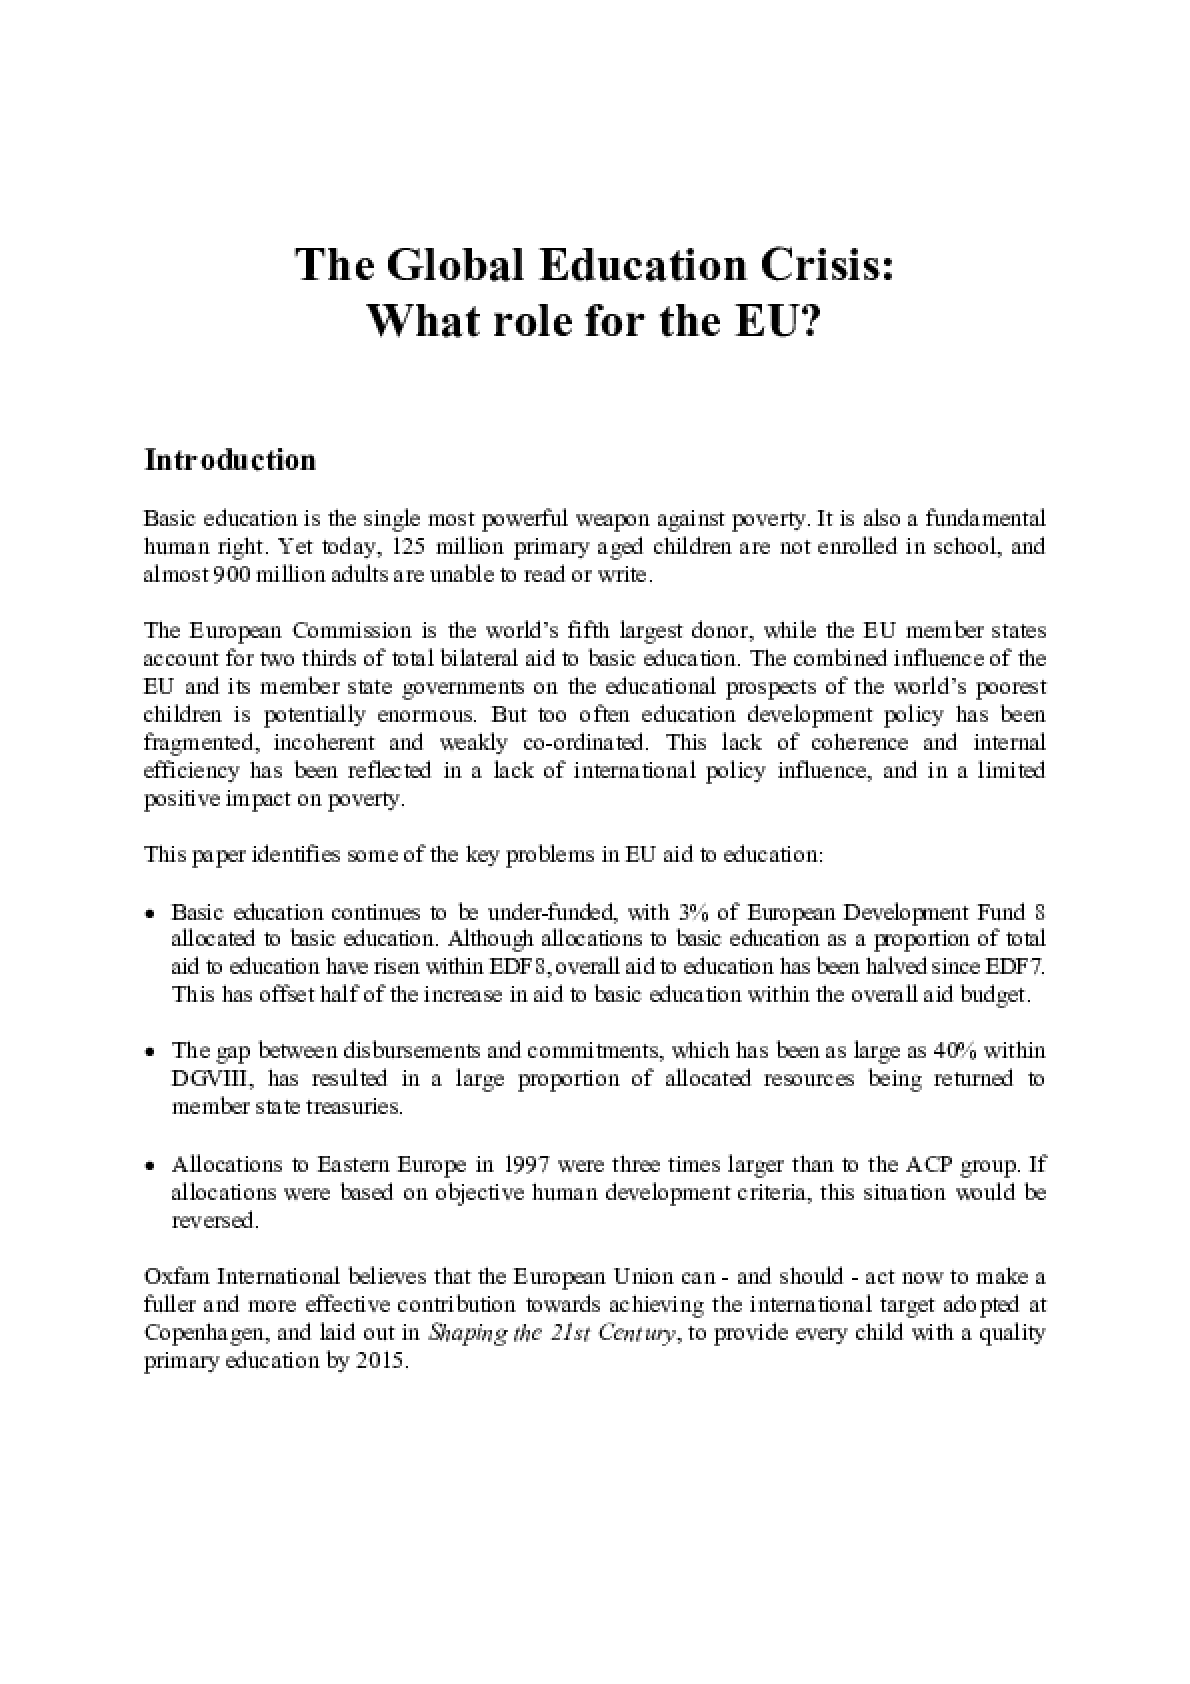 The Global Education Crisis: What role for the EU?